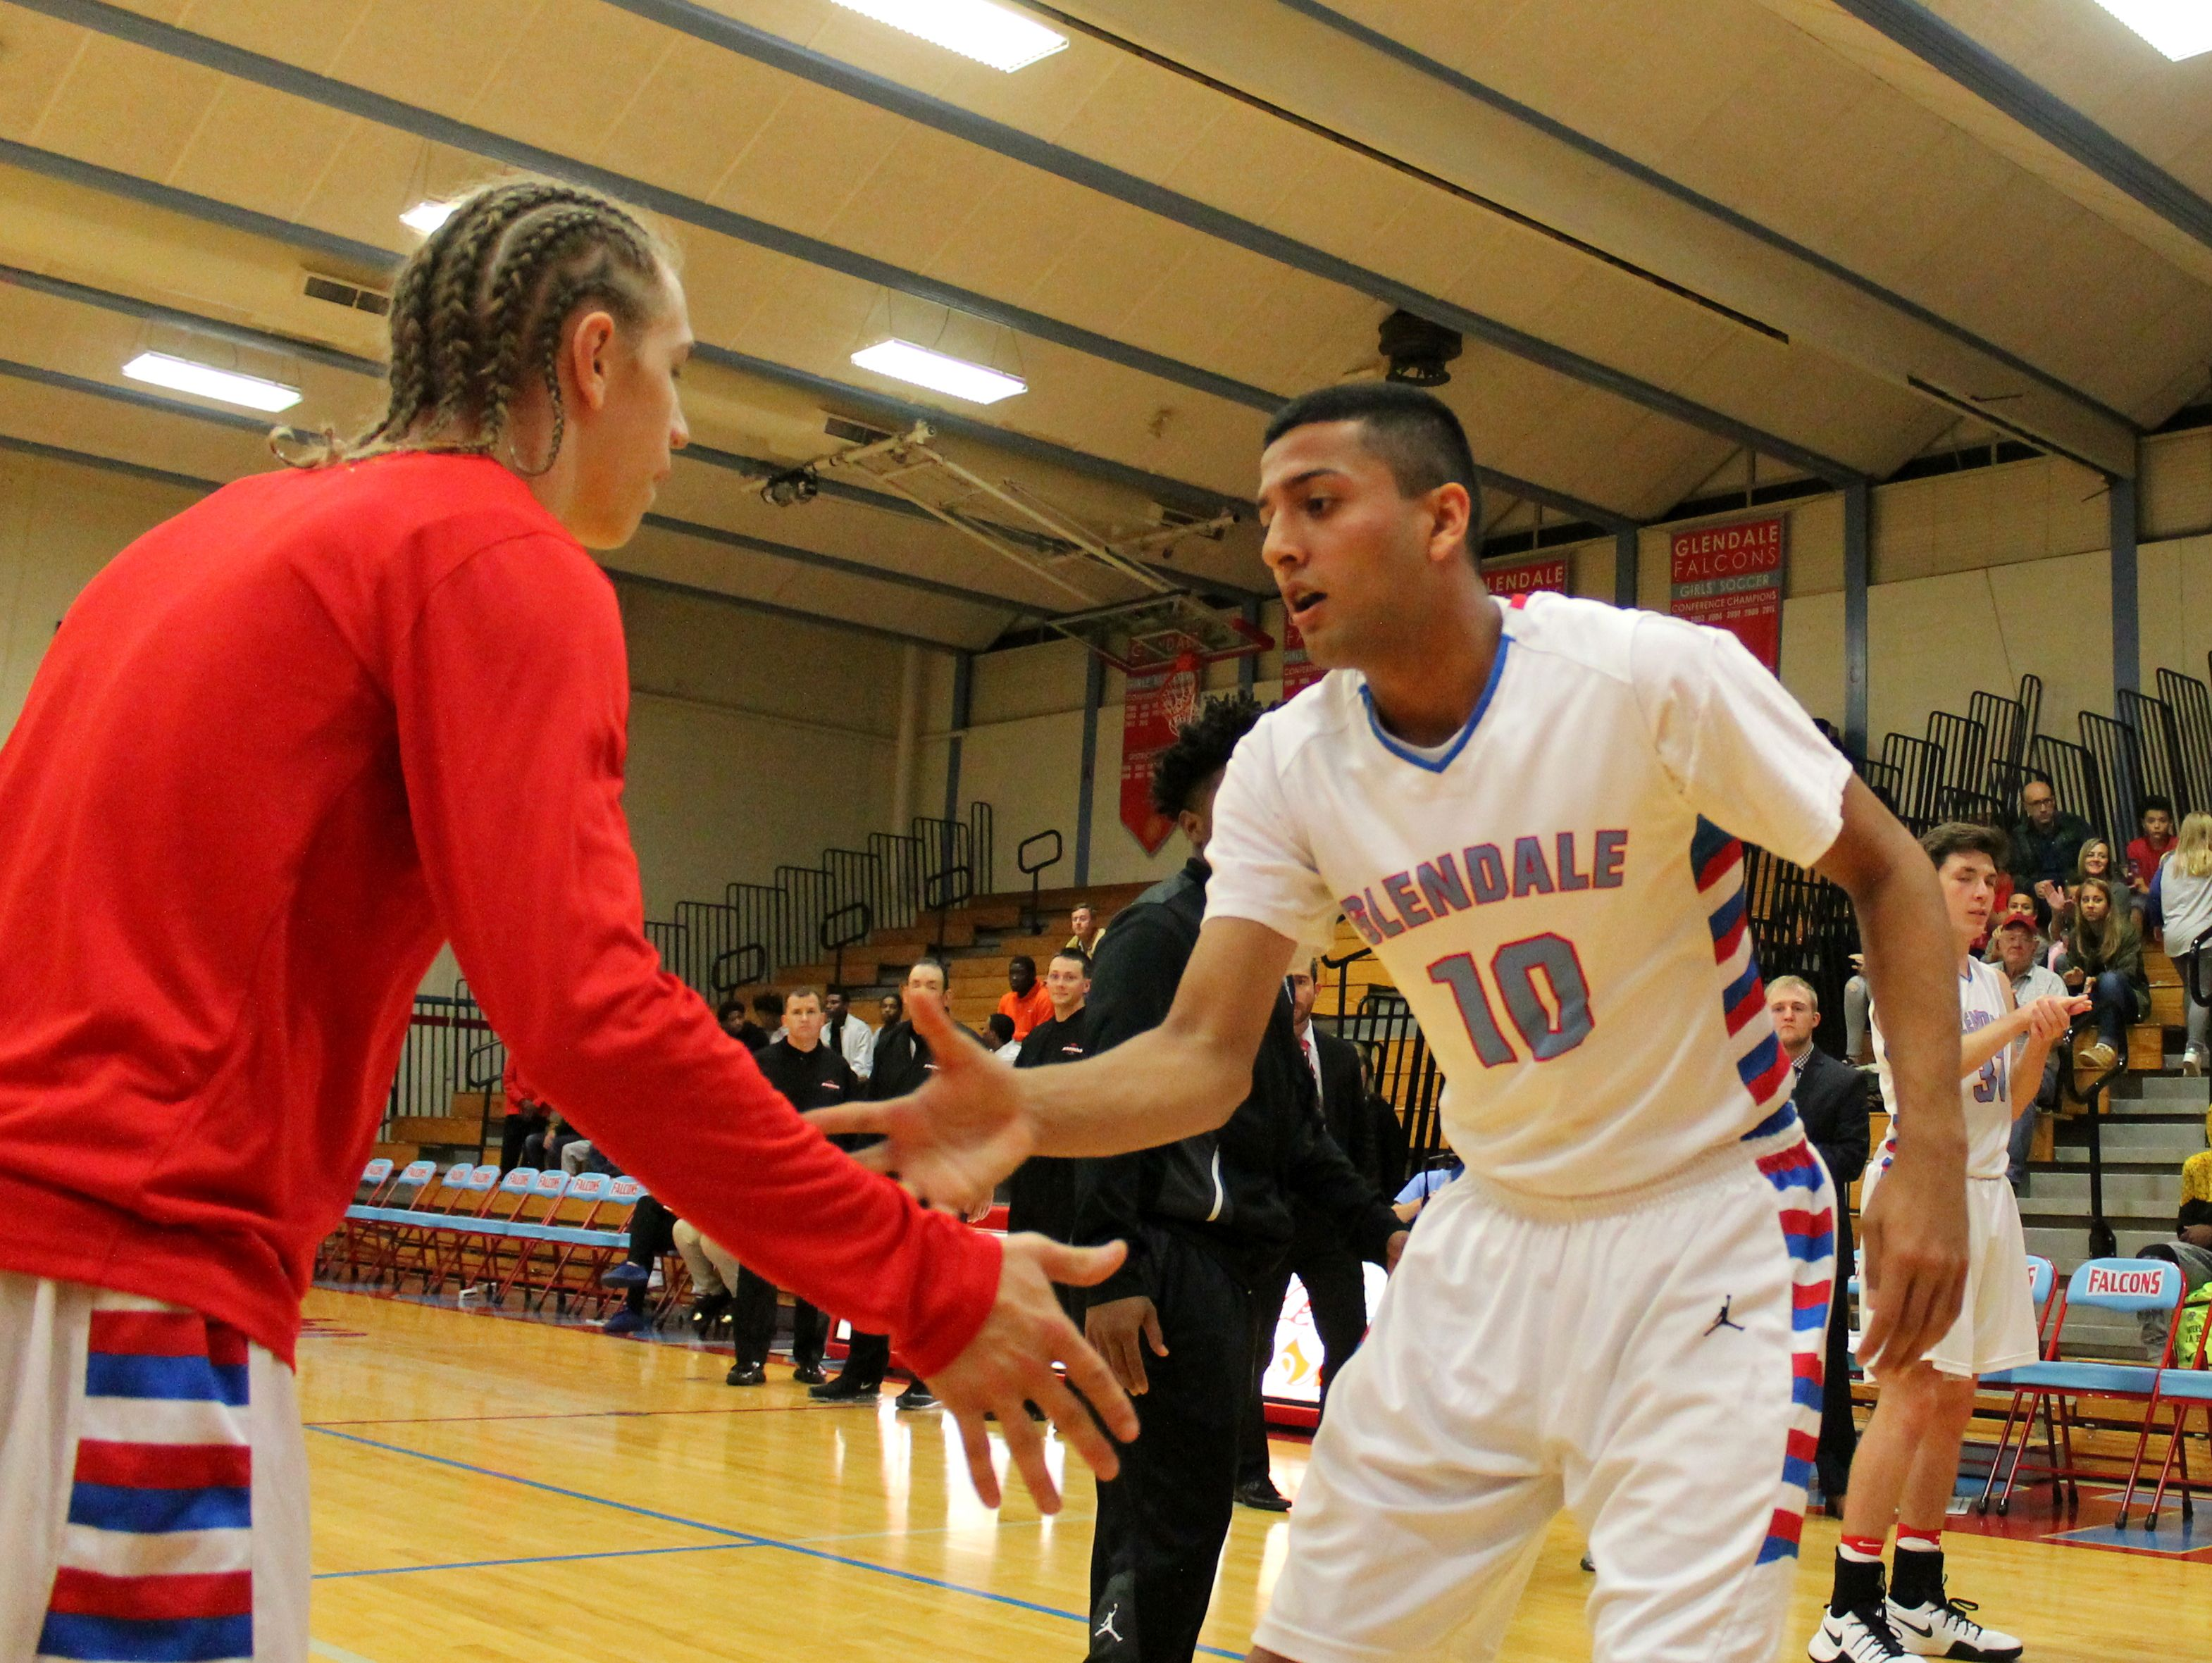 Glendale junior Monty Johal (right) low fives teammate Von Oeser (left) before Glendale's 2015-2016 season-opening home win over Carnahan.